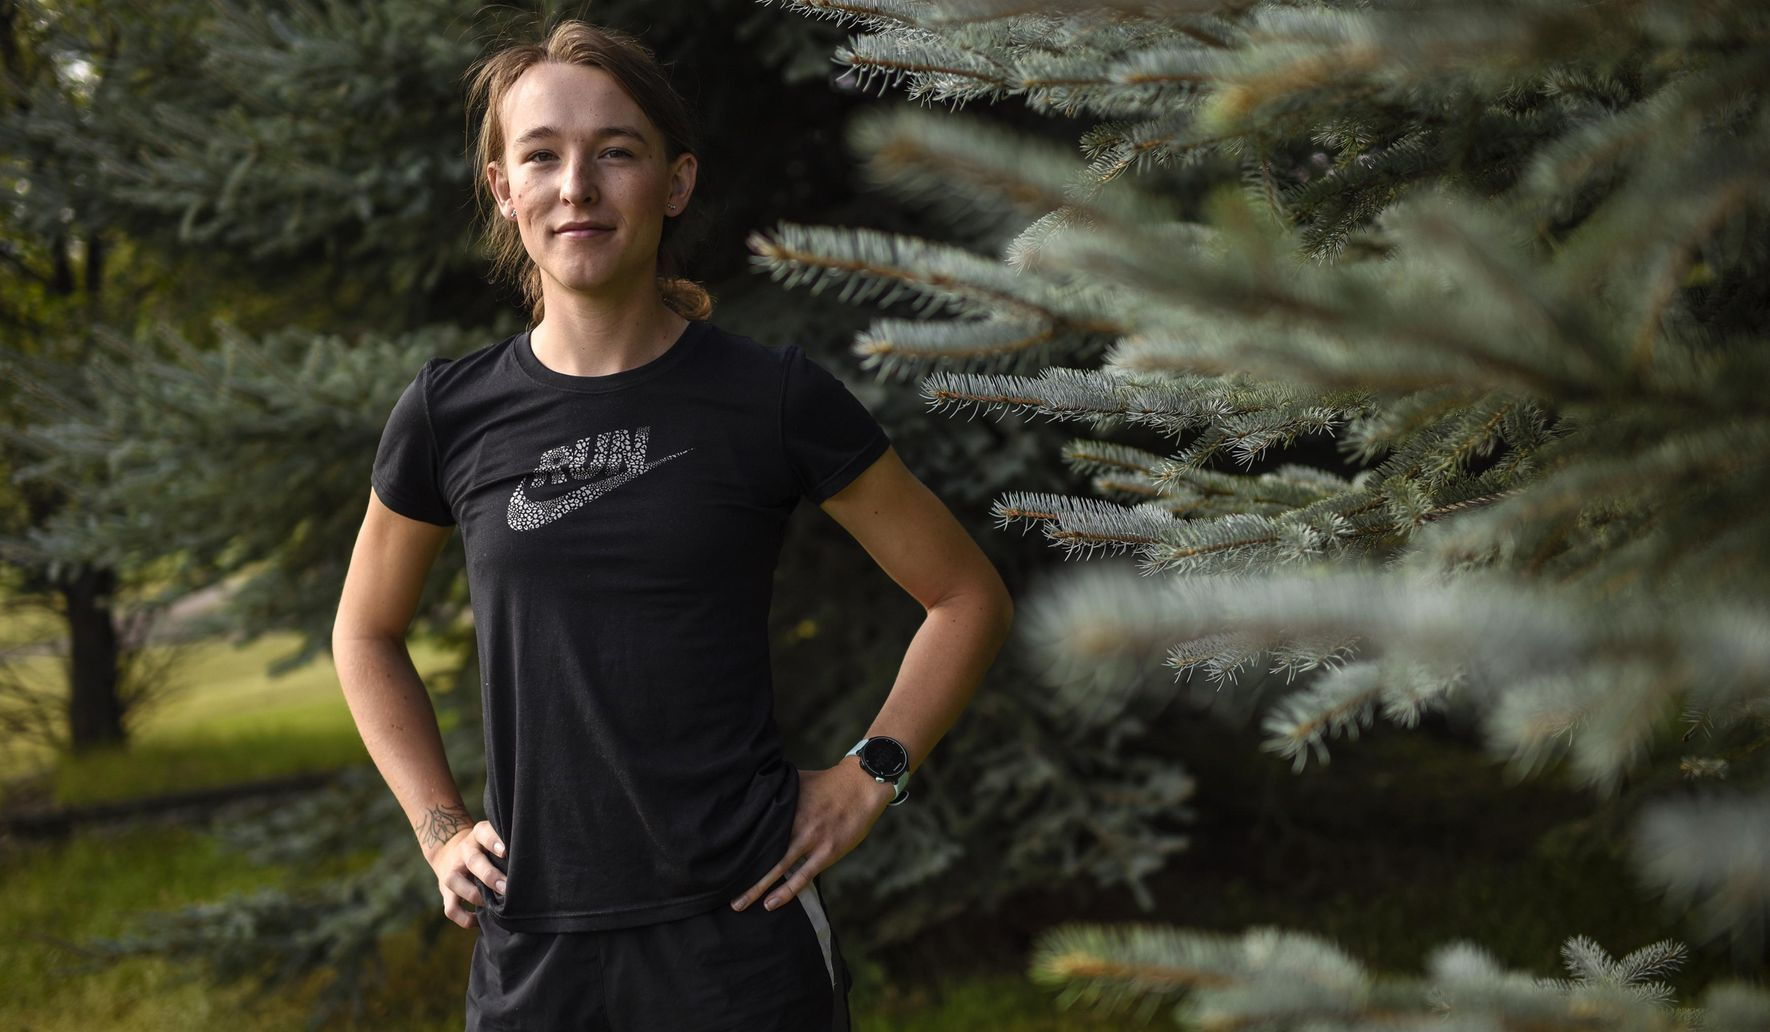 Trans runner to compete against women in NCAA Division I...